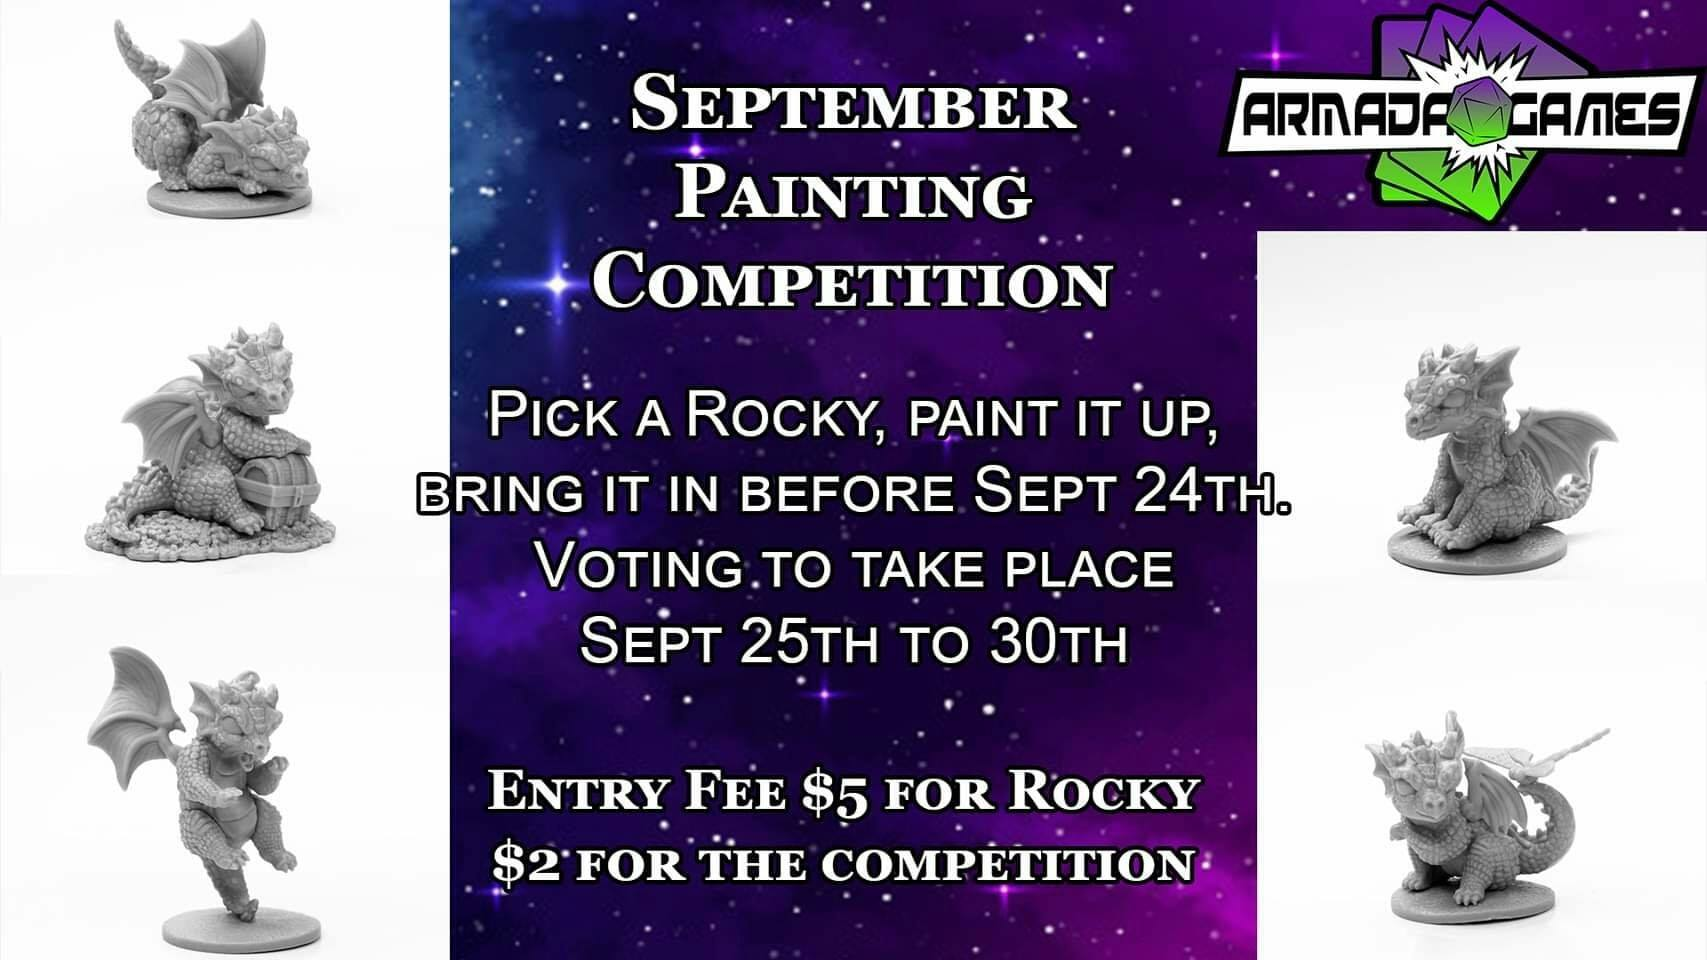 September Painting Competition - Rocky!